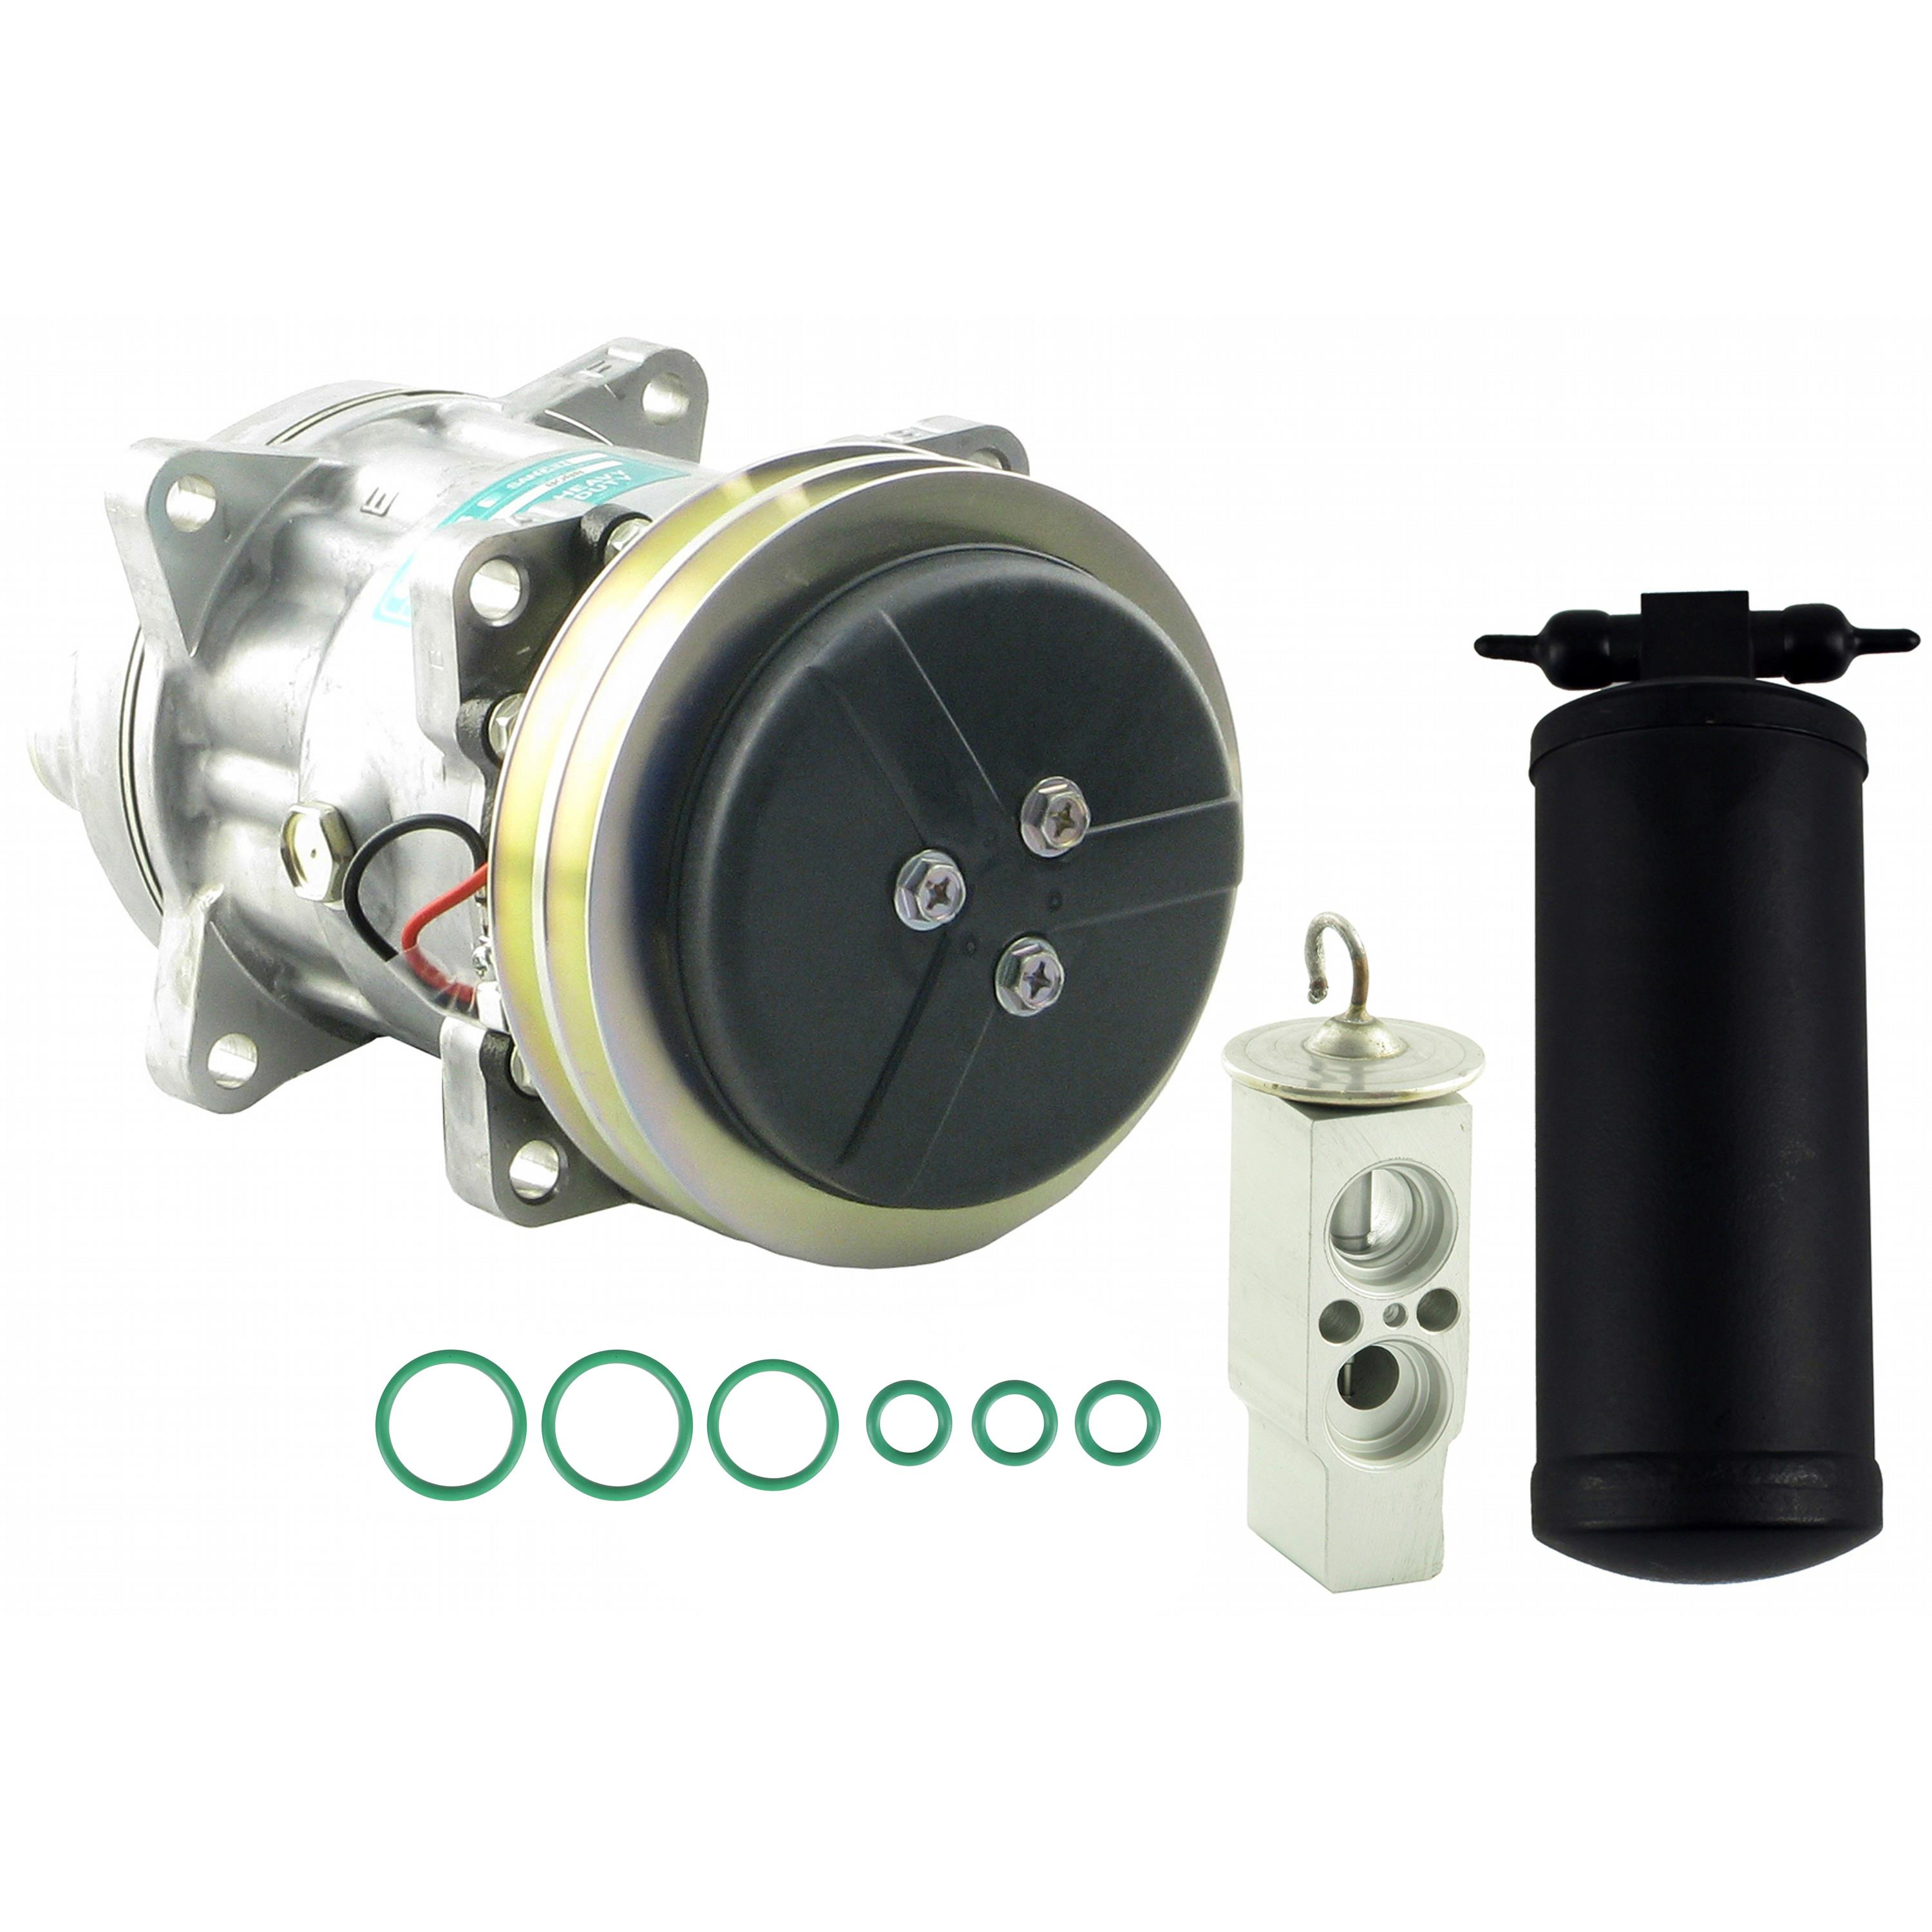 Compressor, Drier & Valve Kit